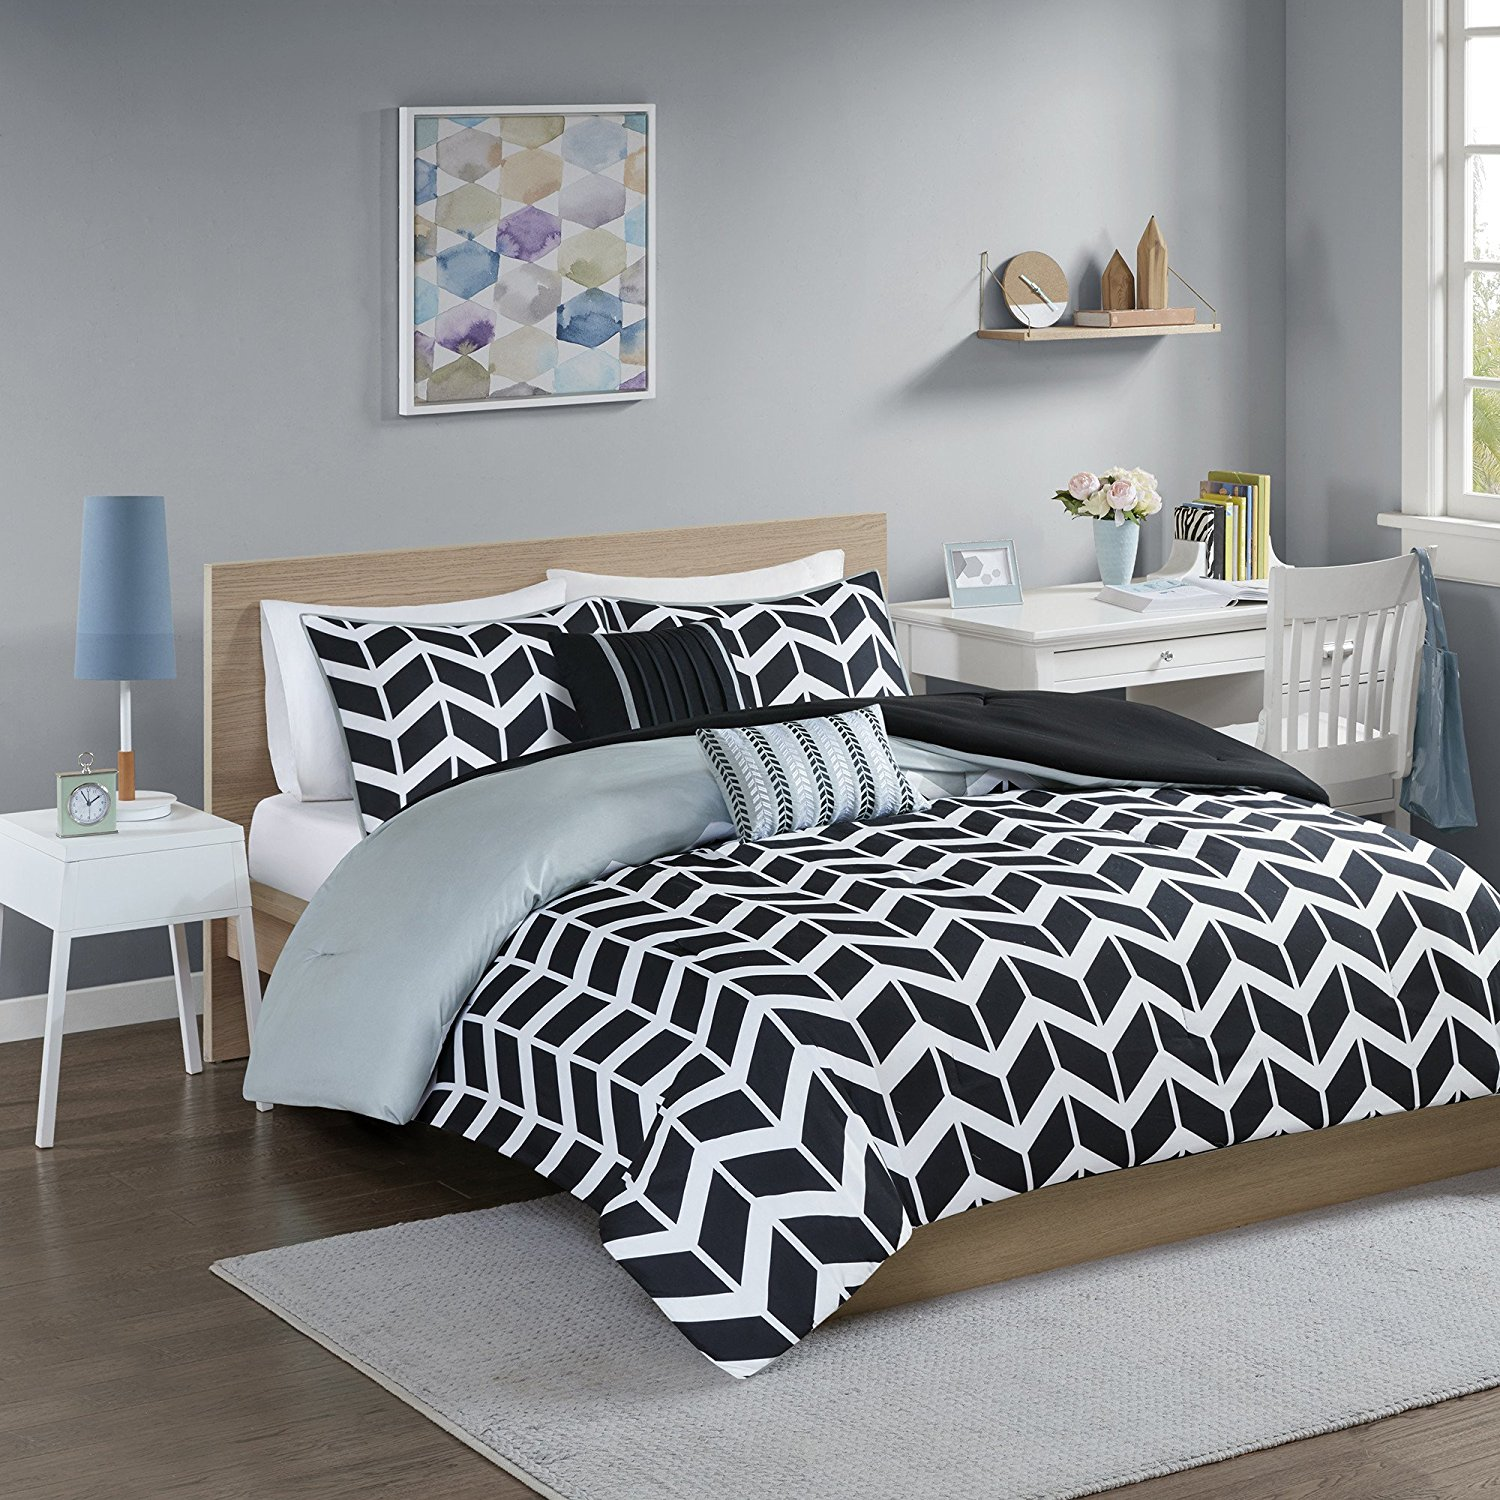 Cheap Black And Grey Pillows Find Black And Grey Pillows Deals On Line At Alibaba Com